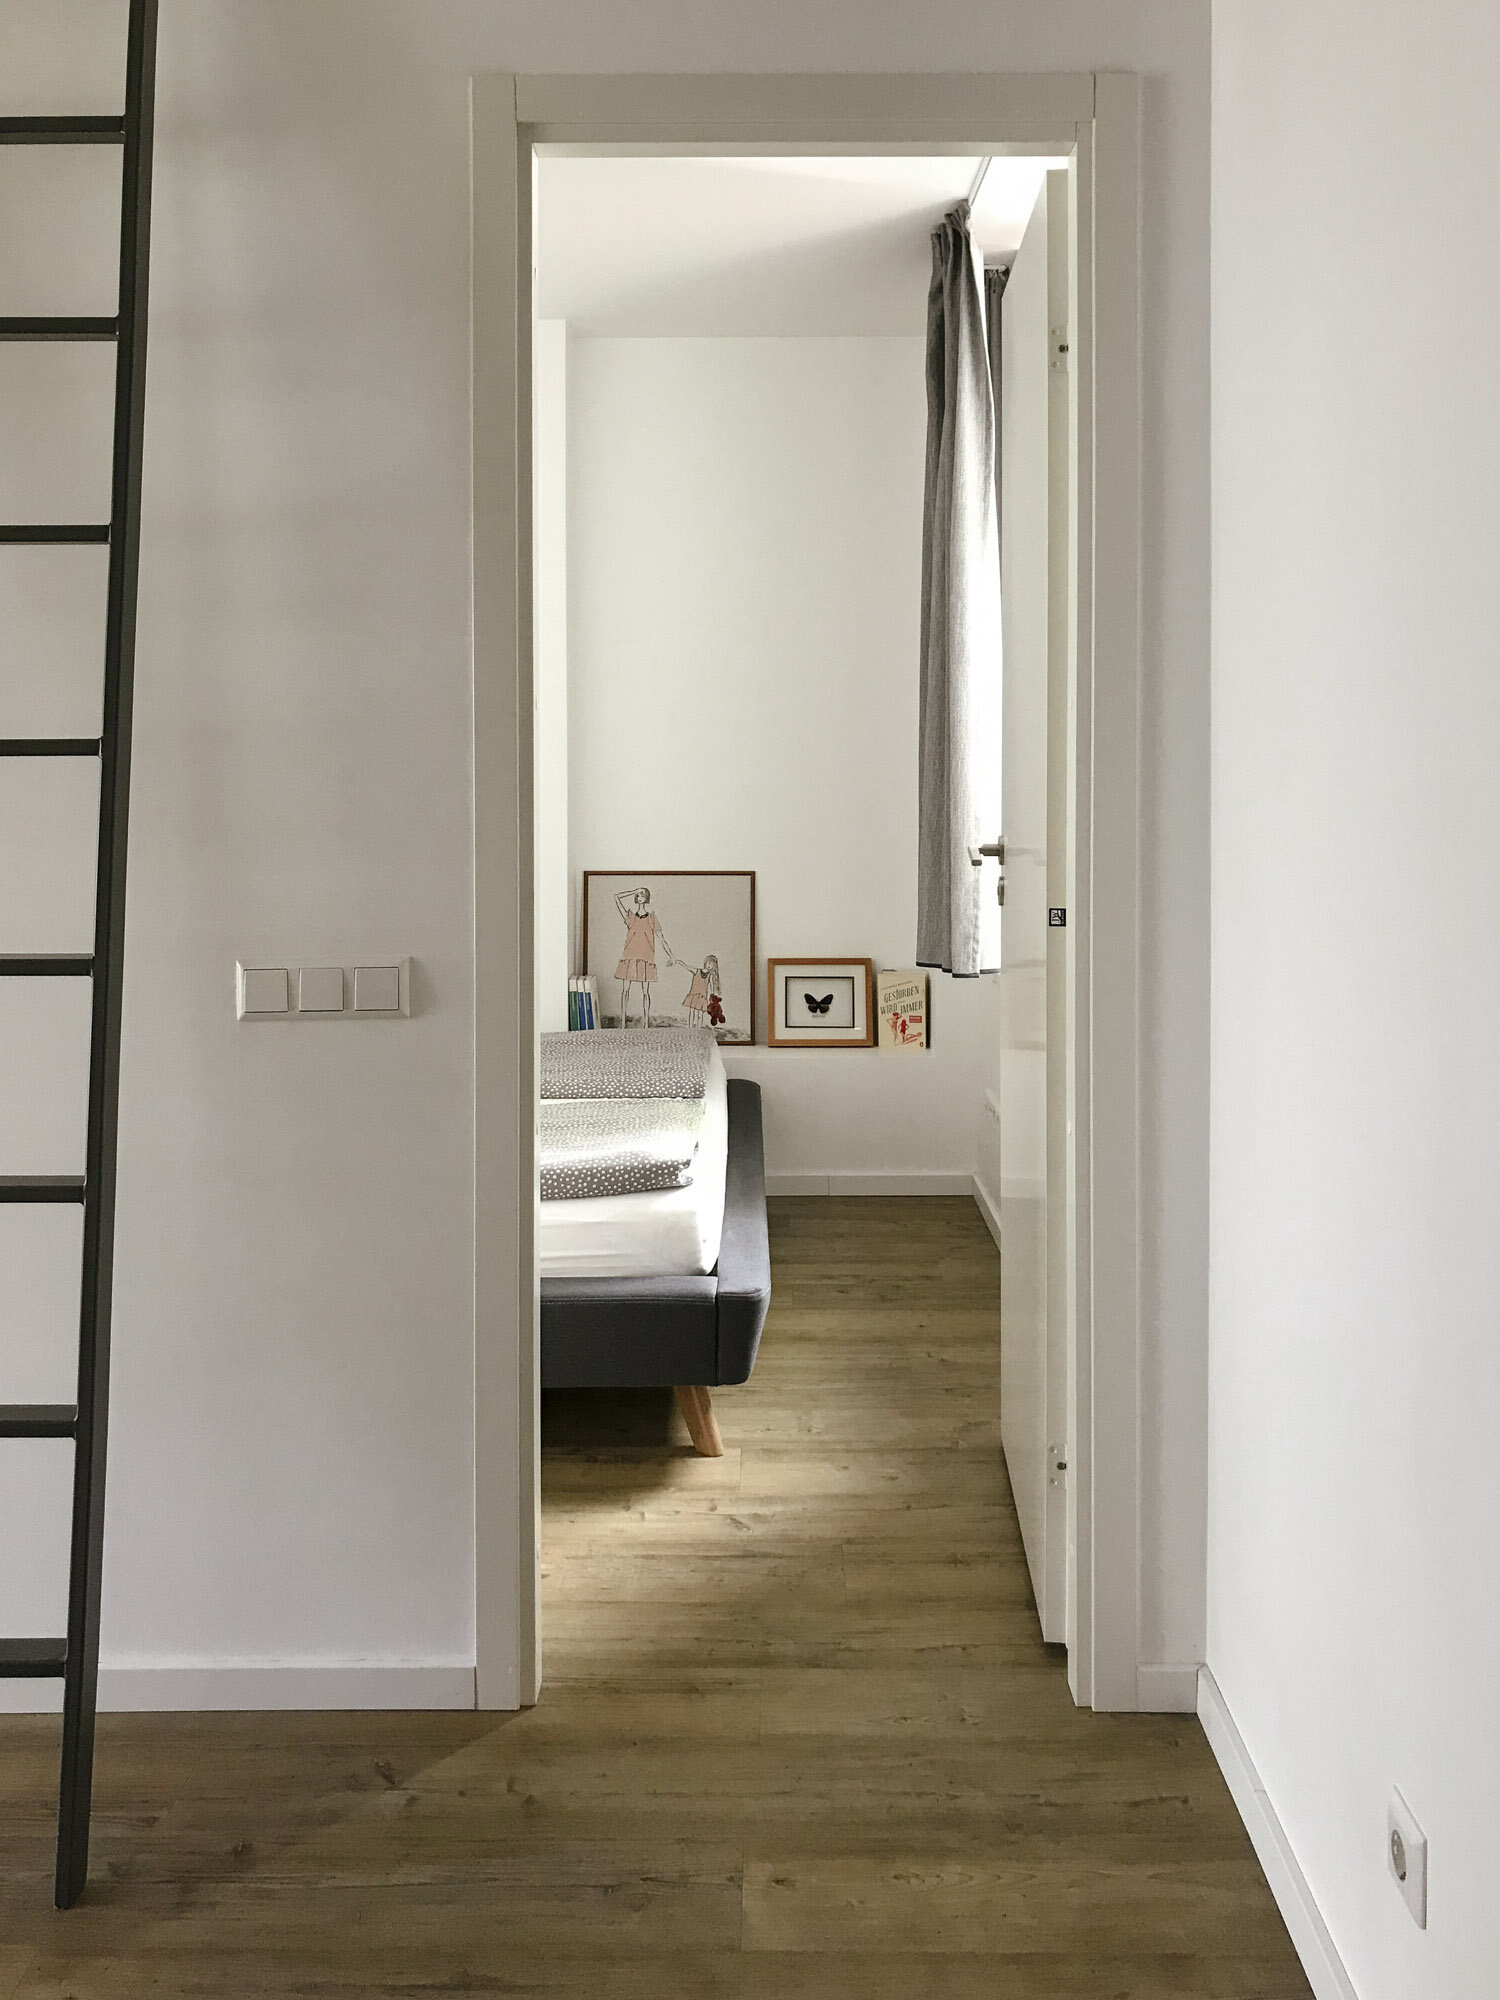 Hotel rooms of...Lithuania..#57...September 2018